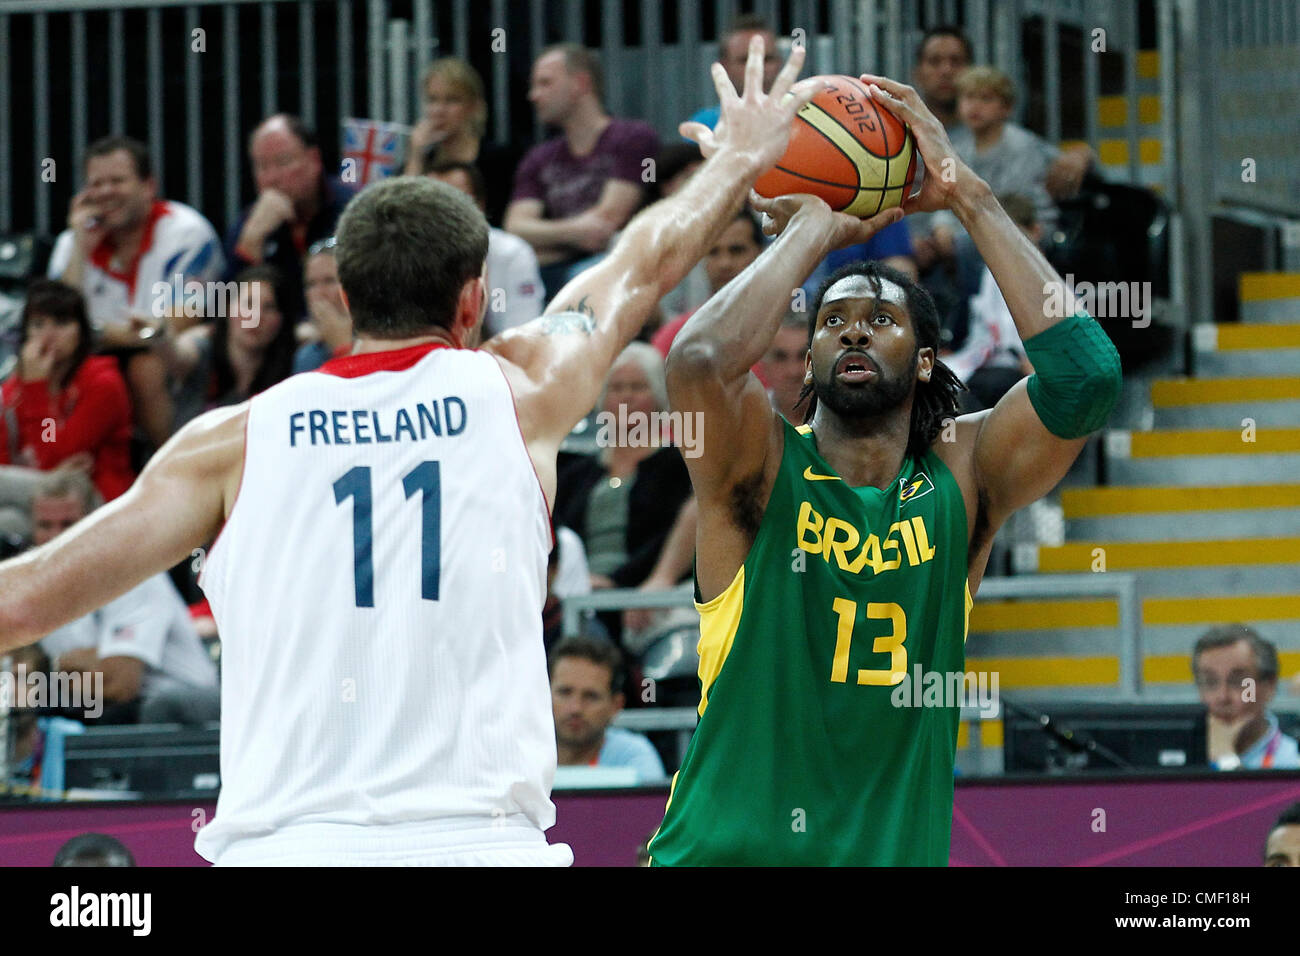 31.07.2012. London, England. 2012 Olympic  Basketball tournament.  Brazil Nene Hilario takes a jumpshot during 67 - Stock Image